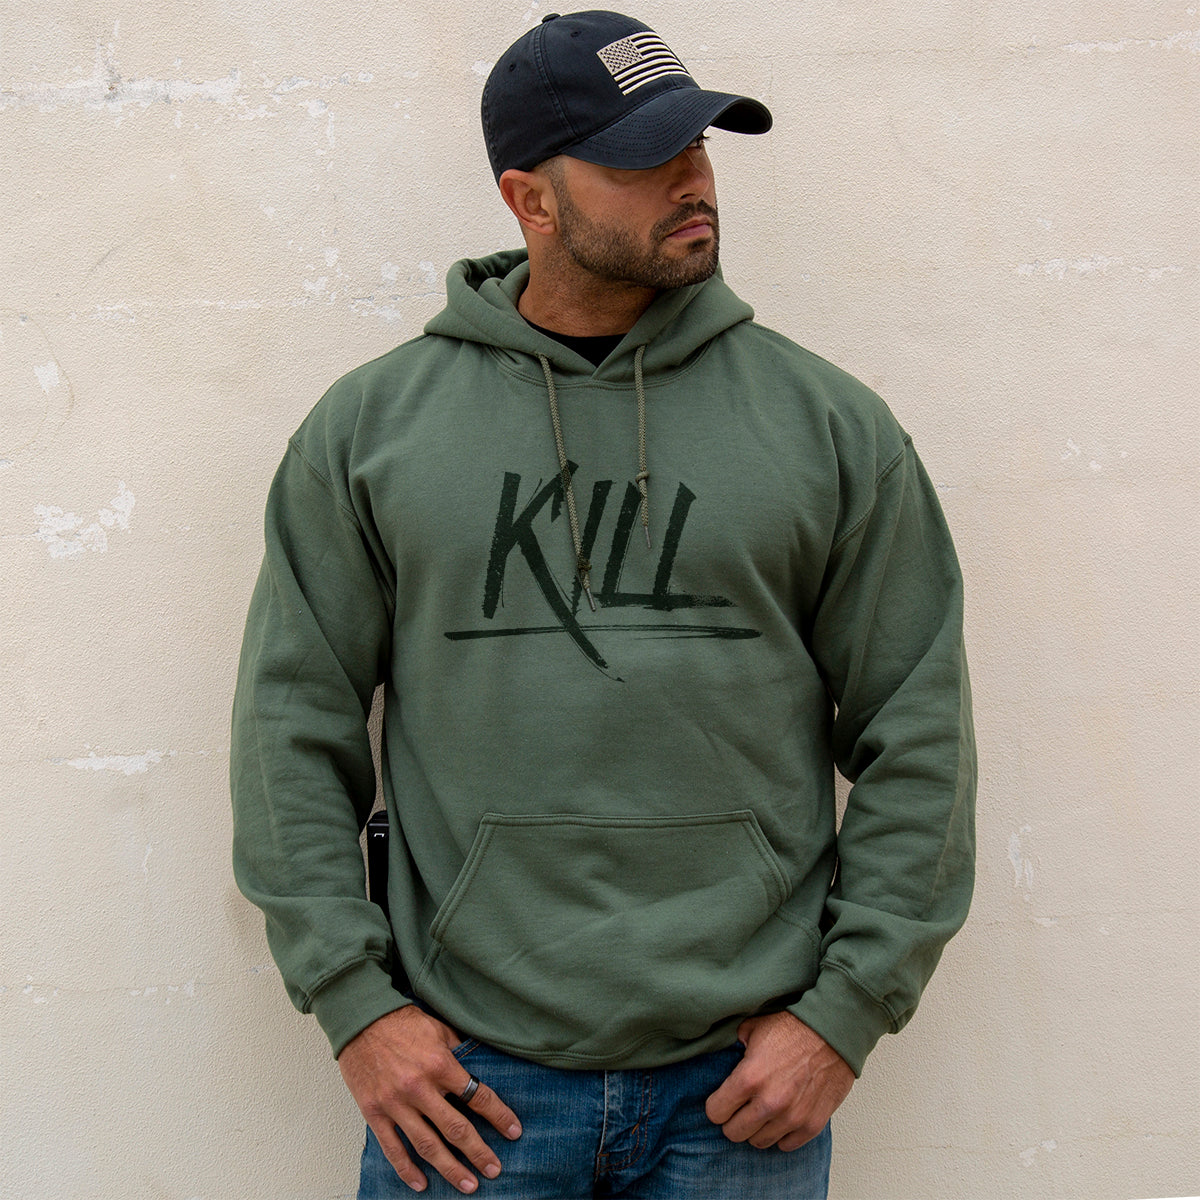 Kill Hoodie - Military Green - Hoodies - Pipe Hitters Union